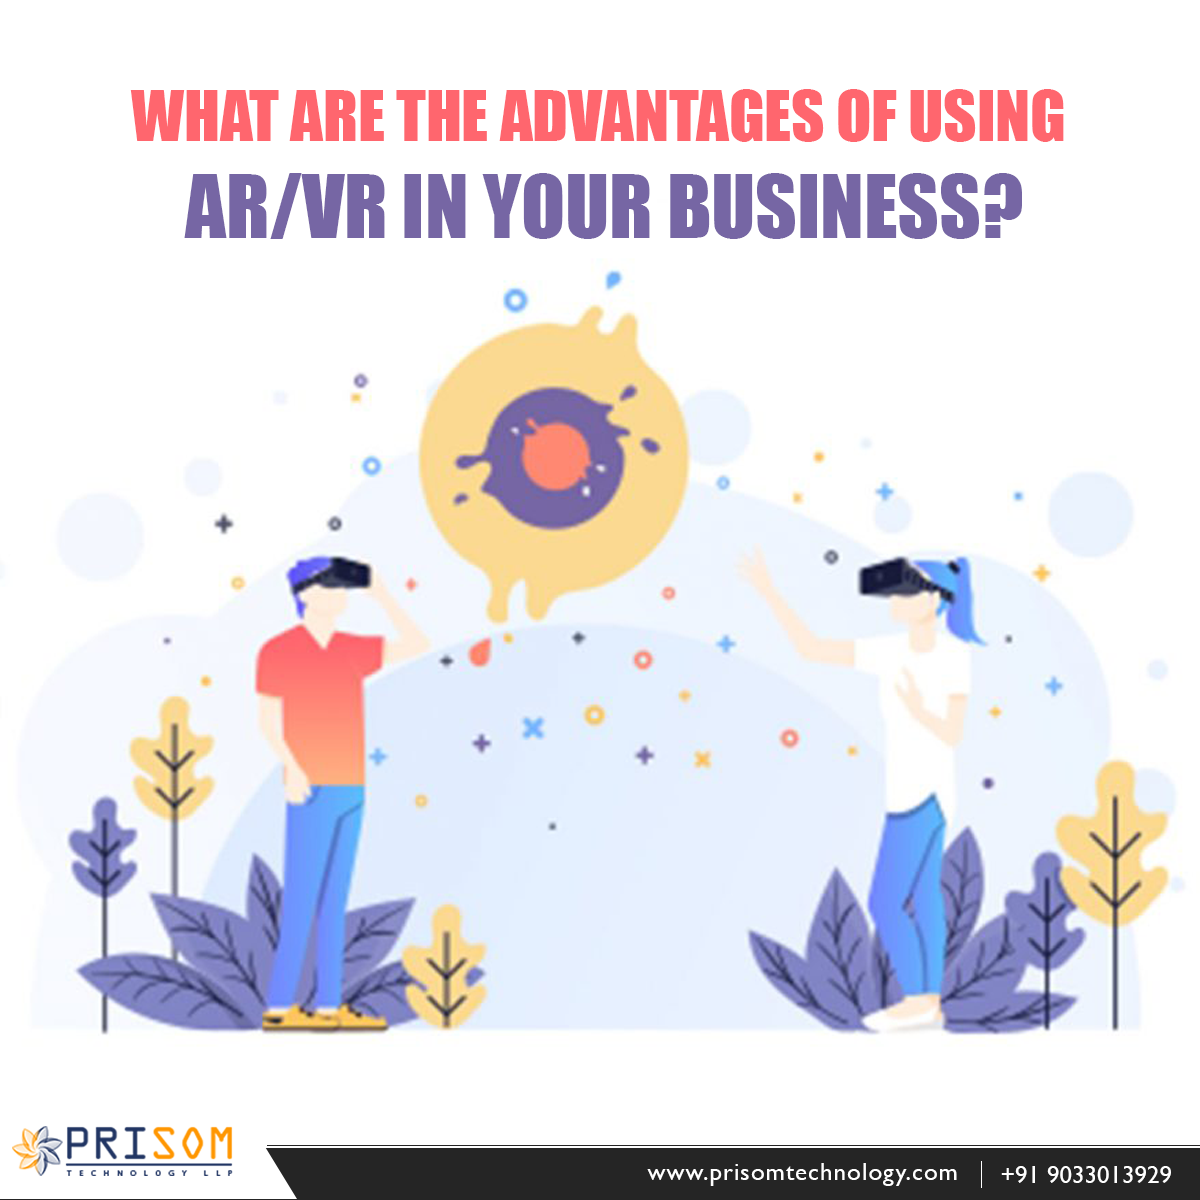 AR/VR in Business